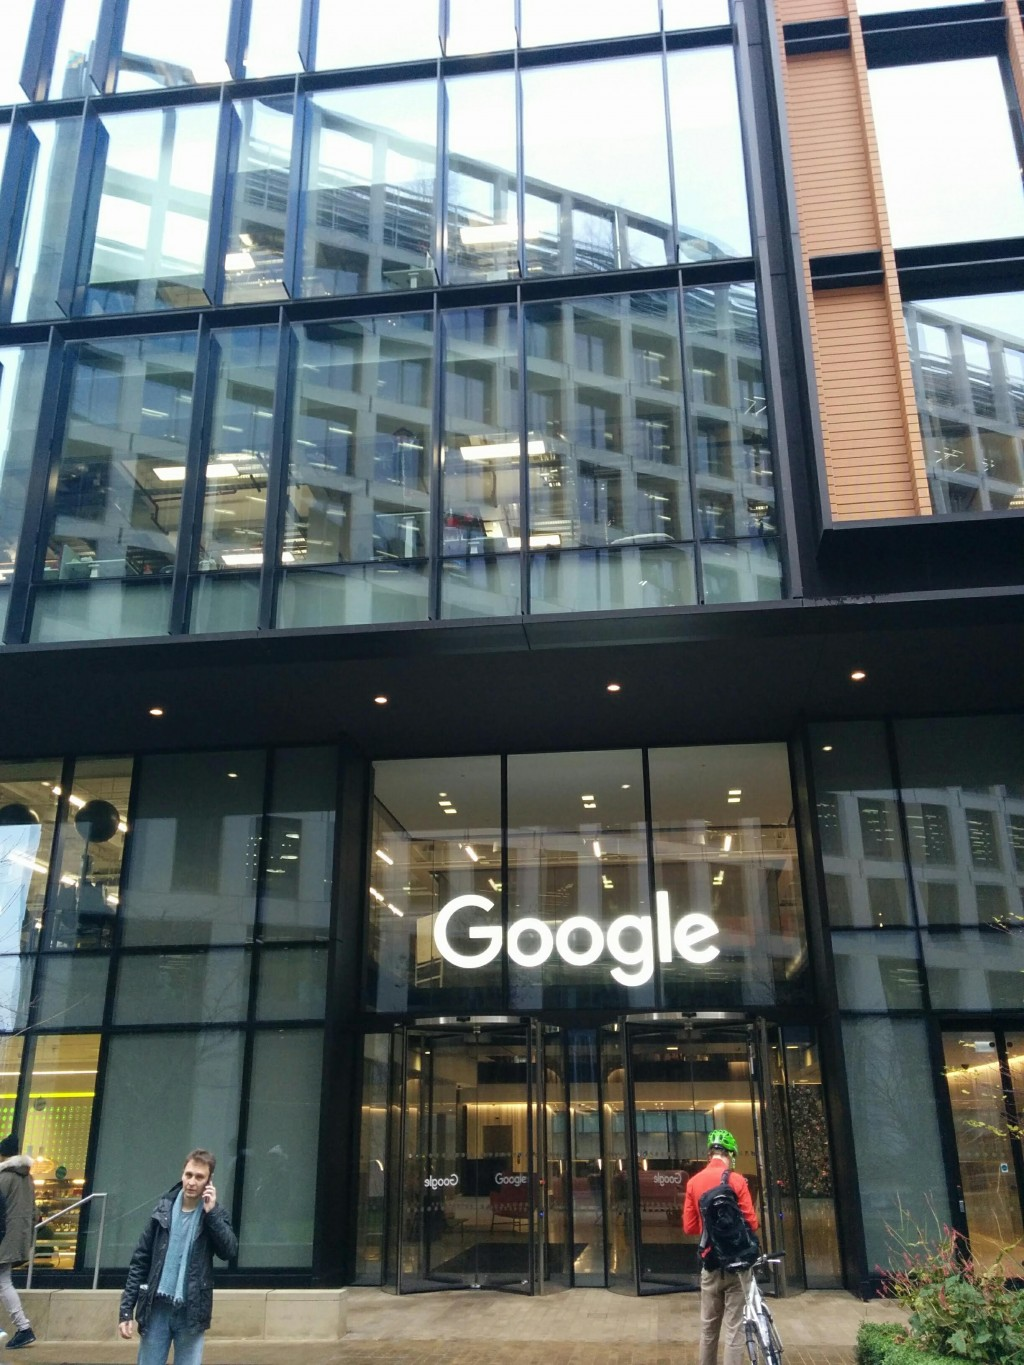 015 Google Deep Mind Headquarters In London2c 6 Pancras Square Deepmind Researchs Outstanding Research Papers Large